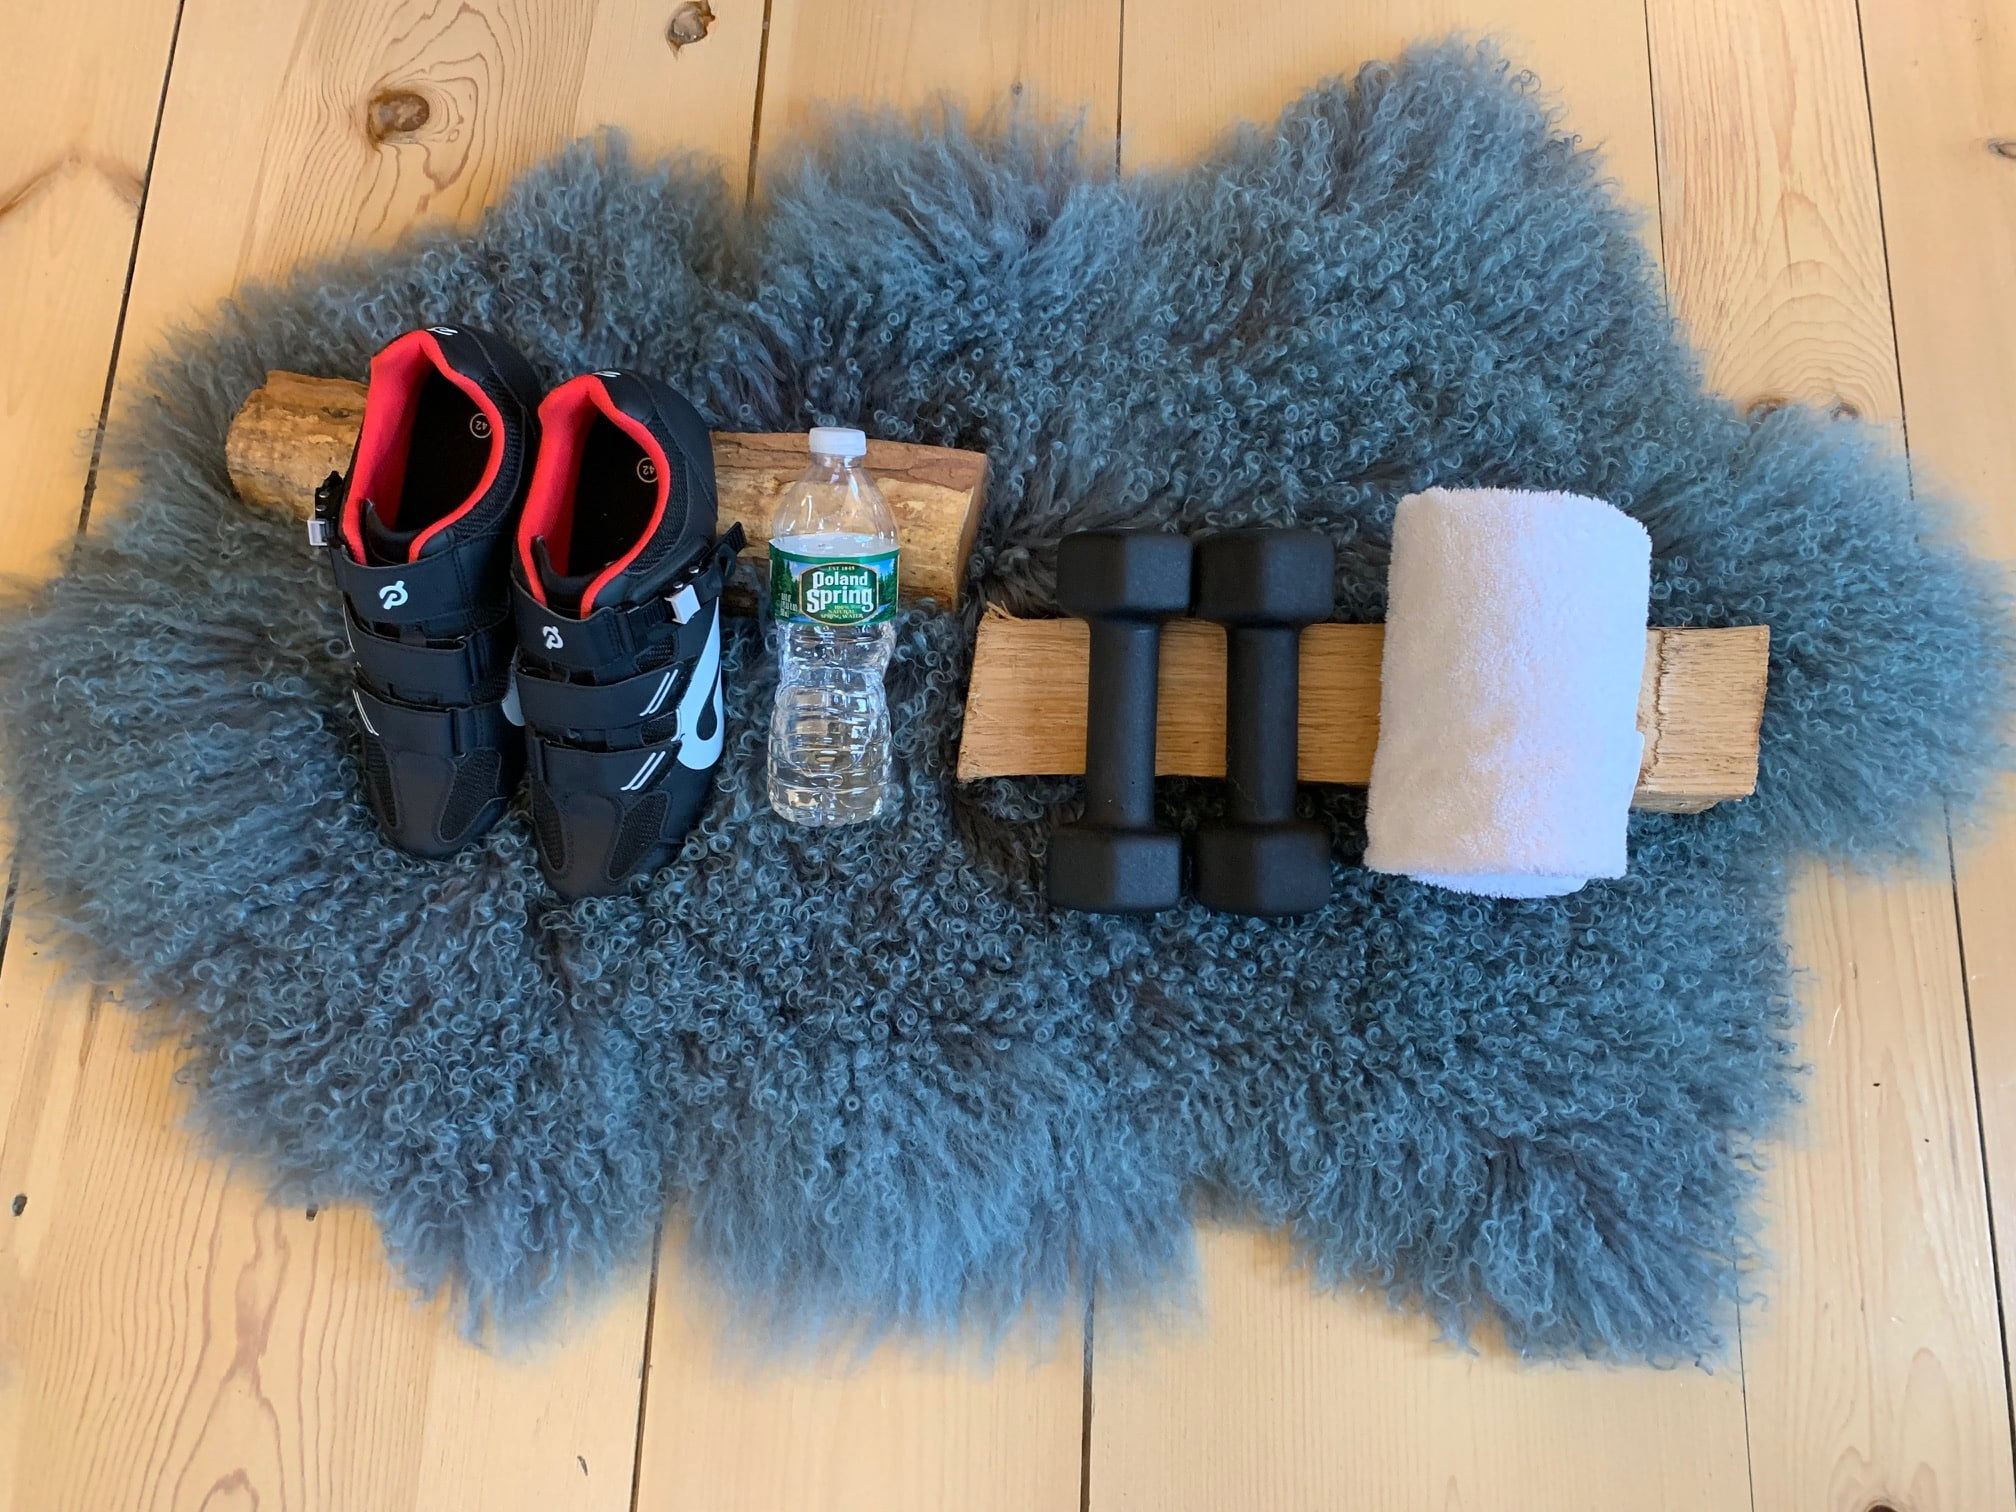 equipment in client's at home gym